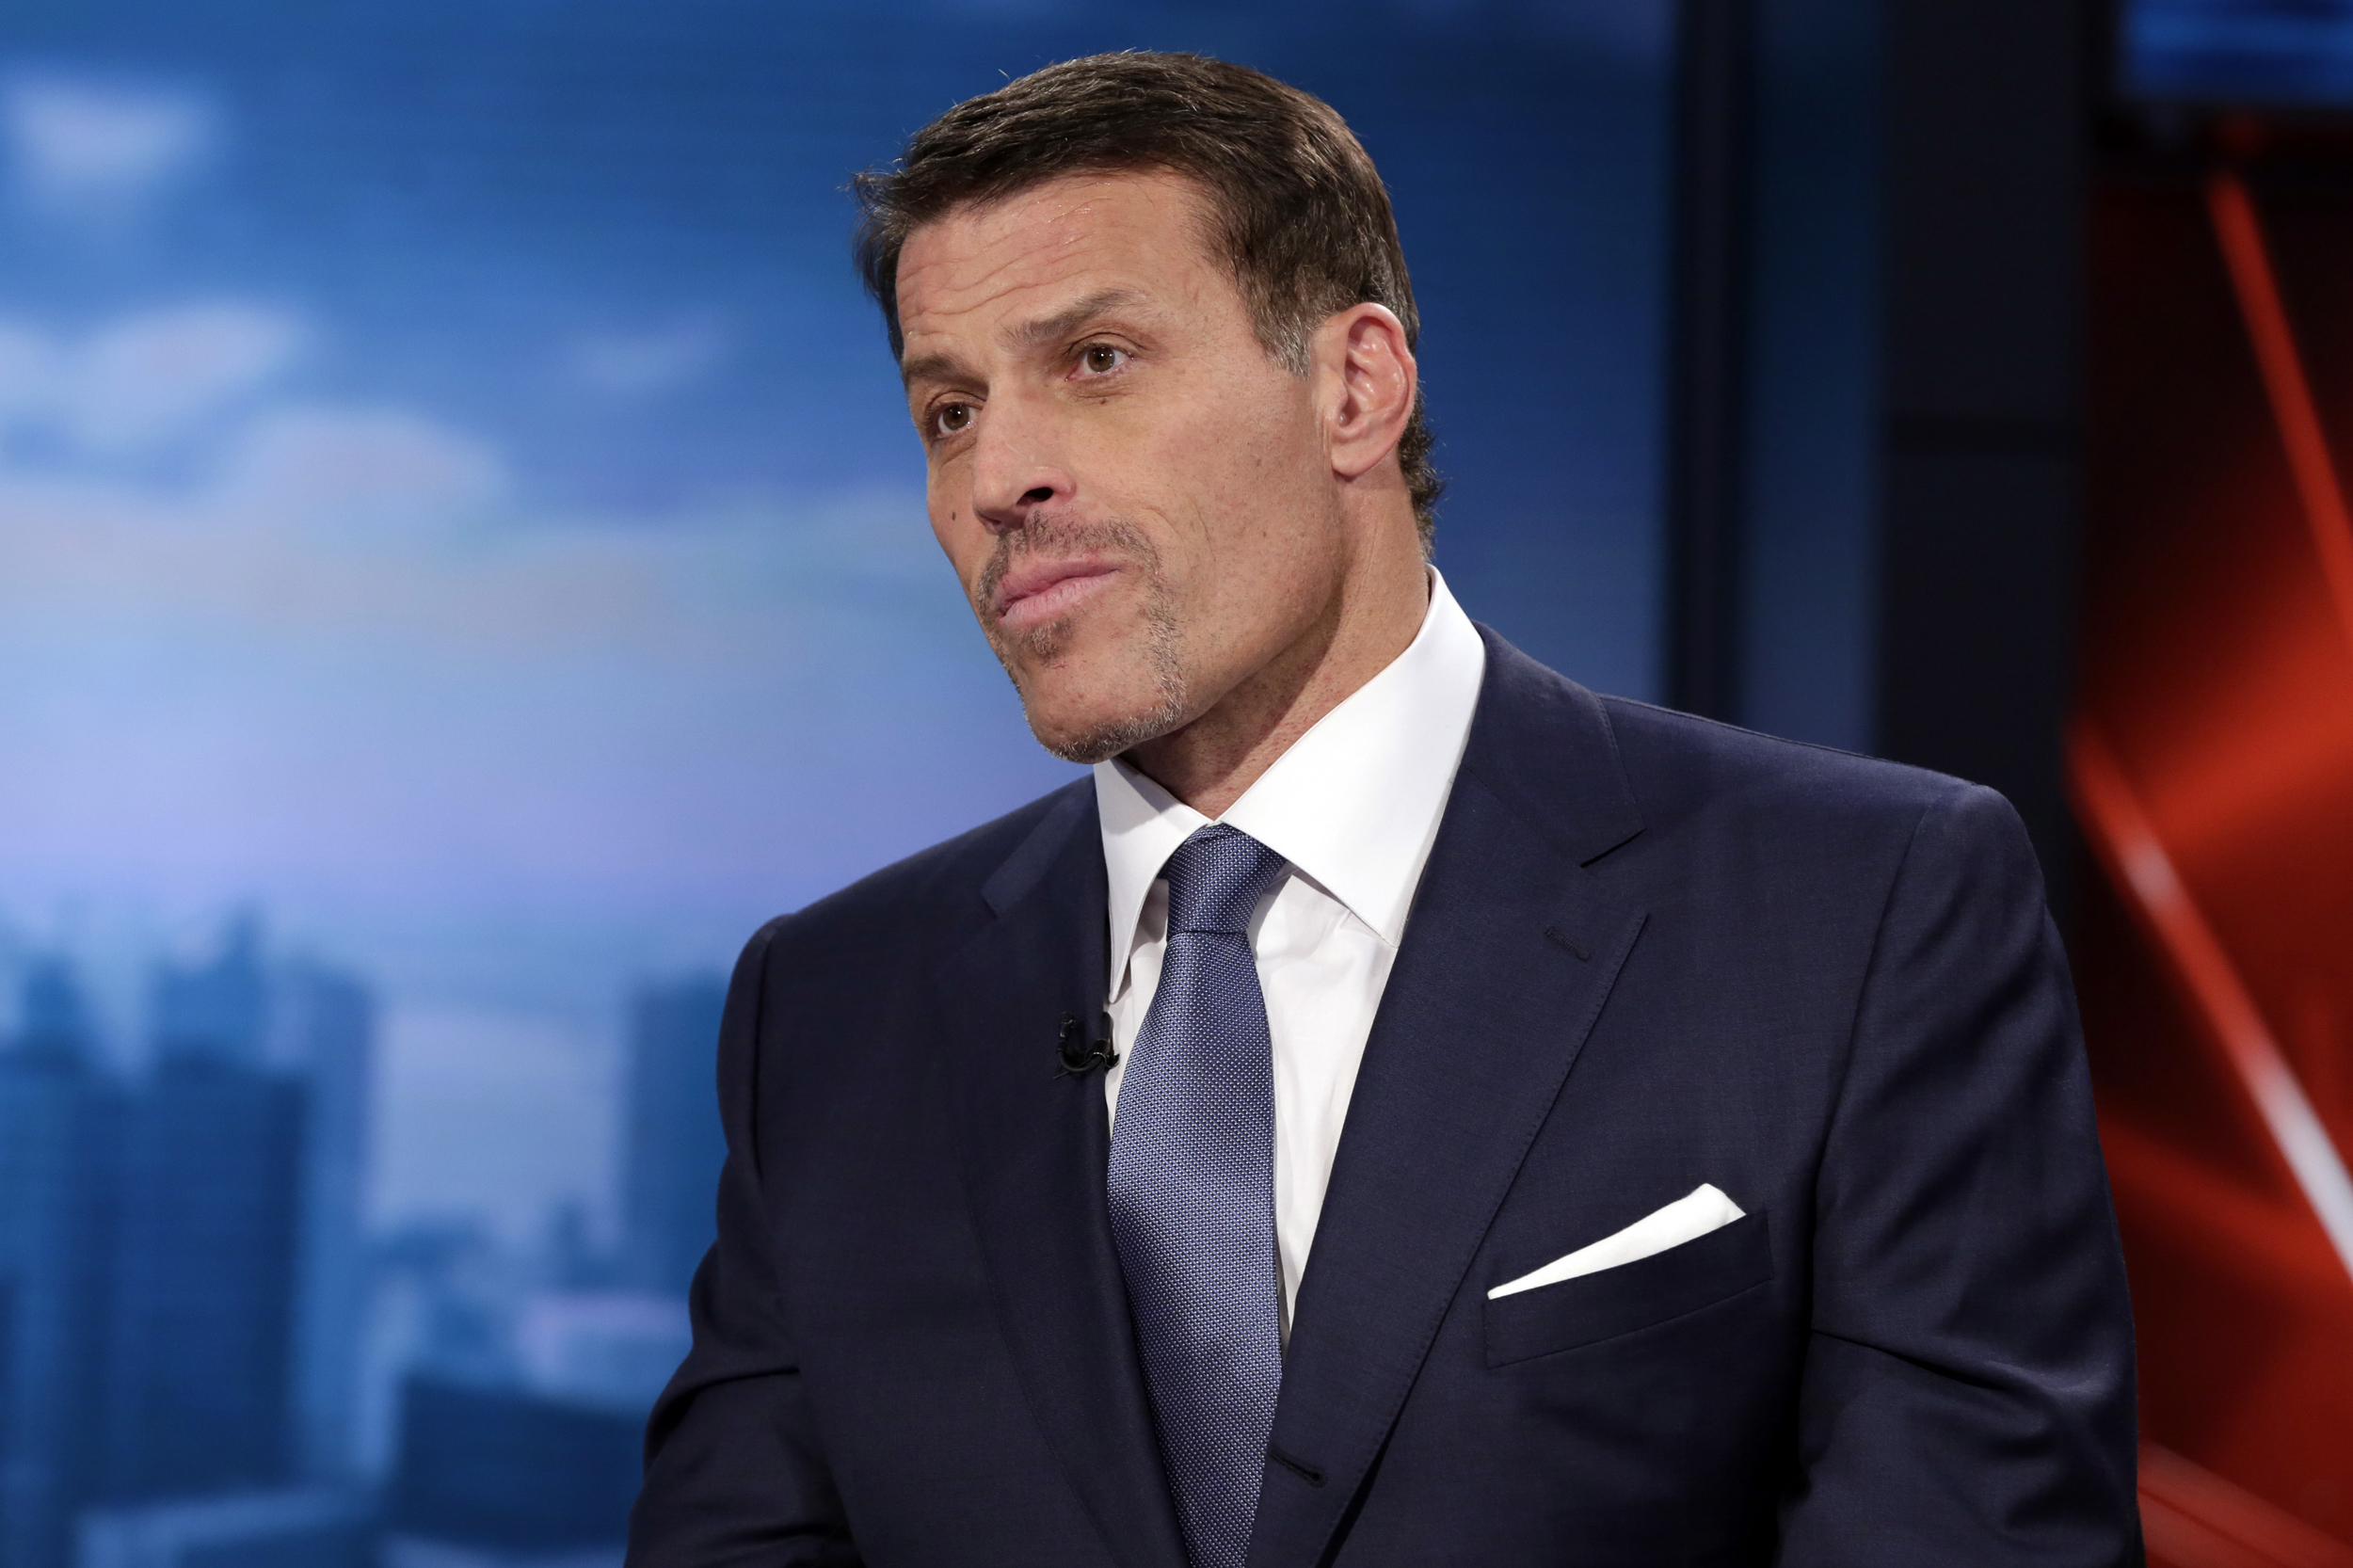 Tony Robbins apologizes for critical comments about MeToo movement